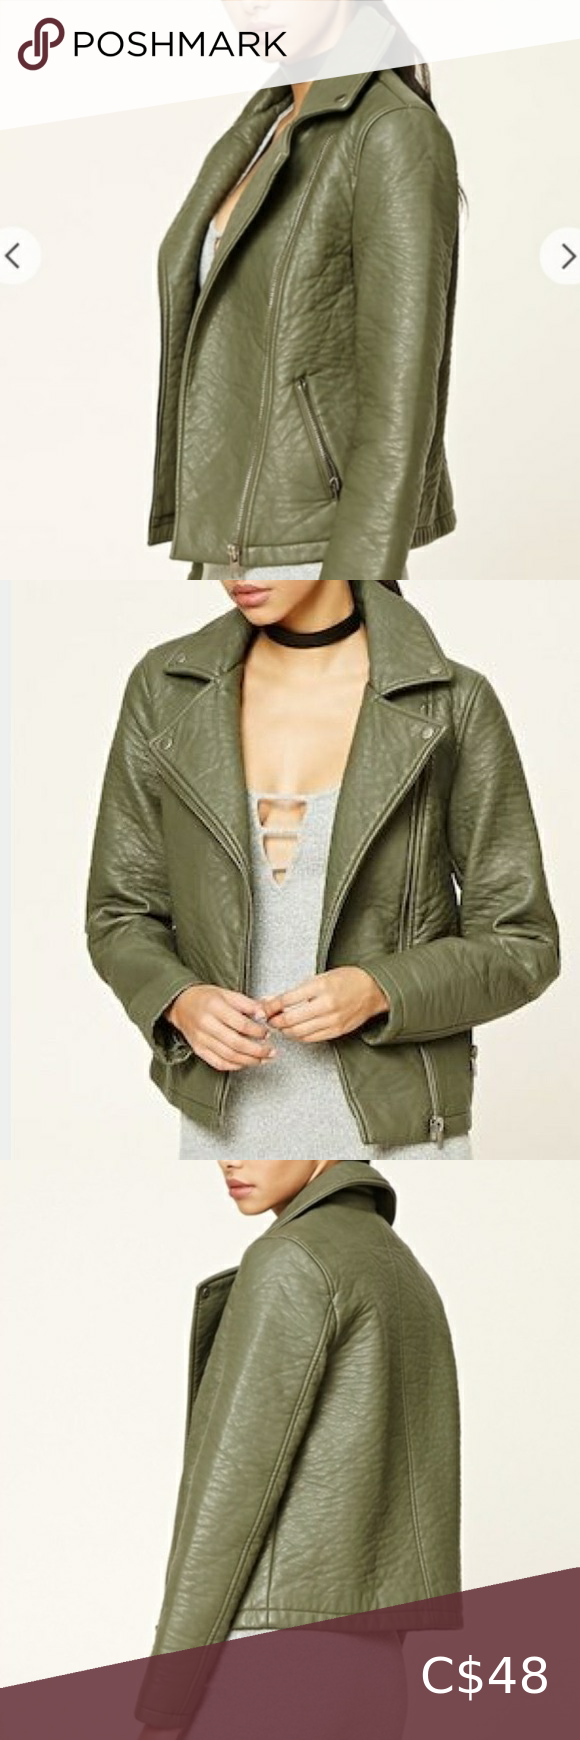 Forever21 Textured Faux Pebble Leather Moto Jacket in 2020